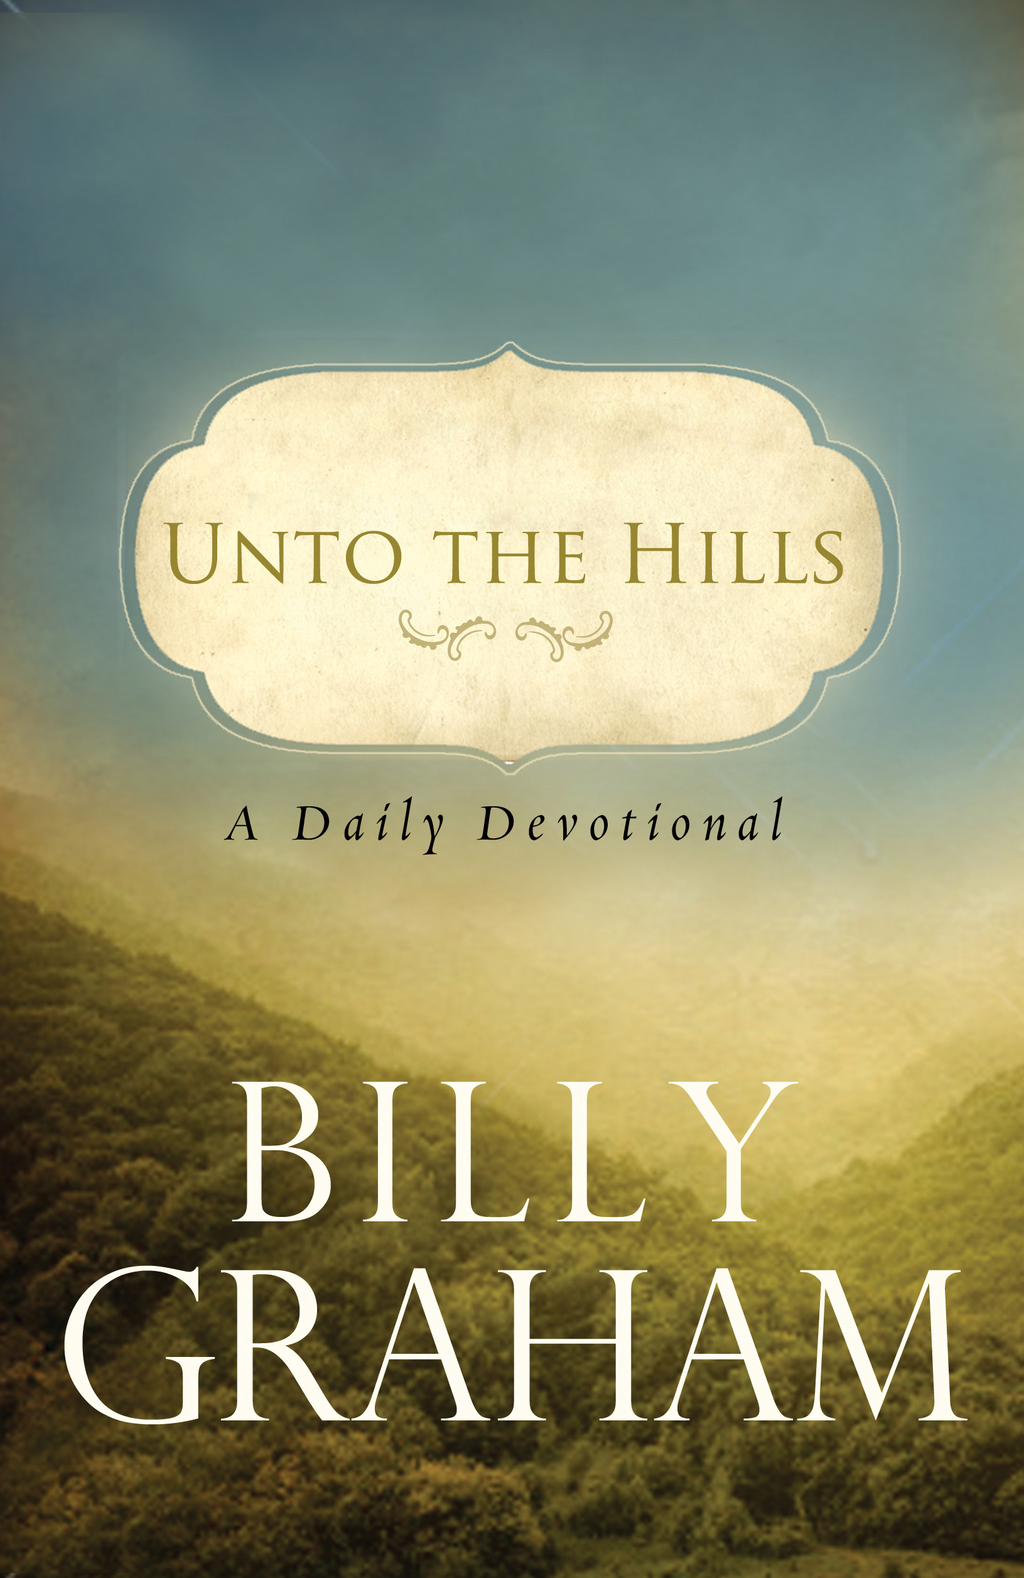 Unto the Hills: A Daily Devotional By: Billy Graham